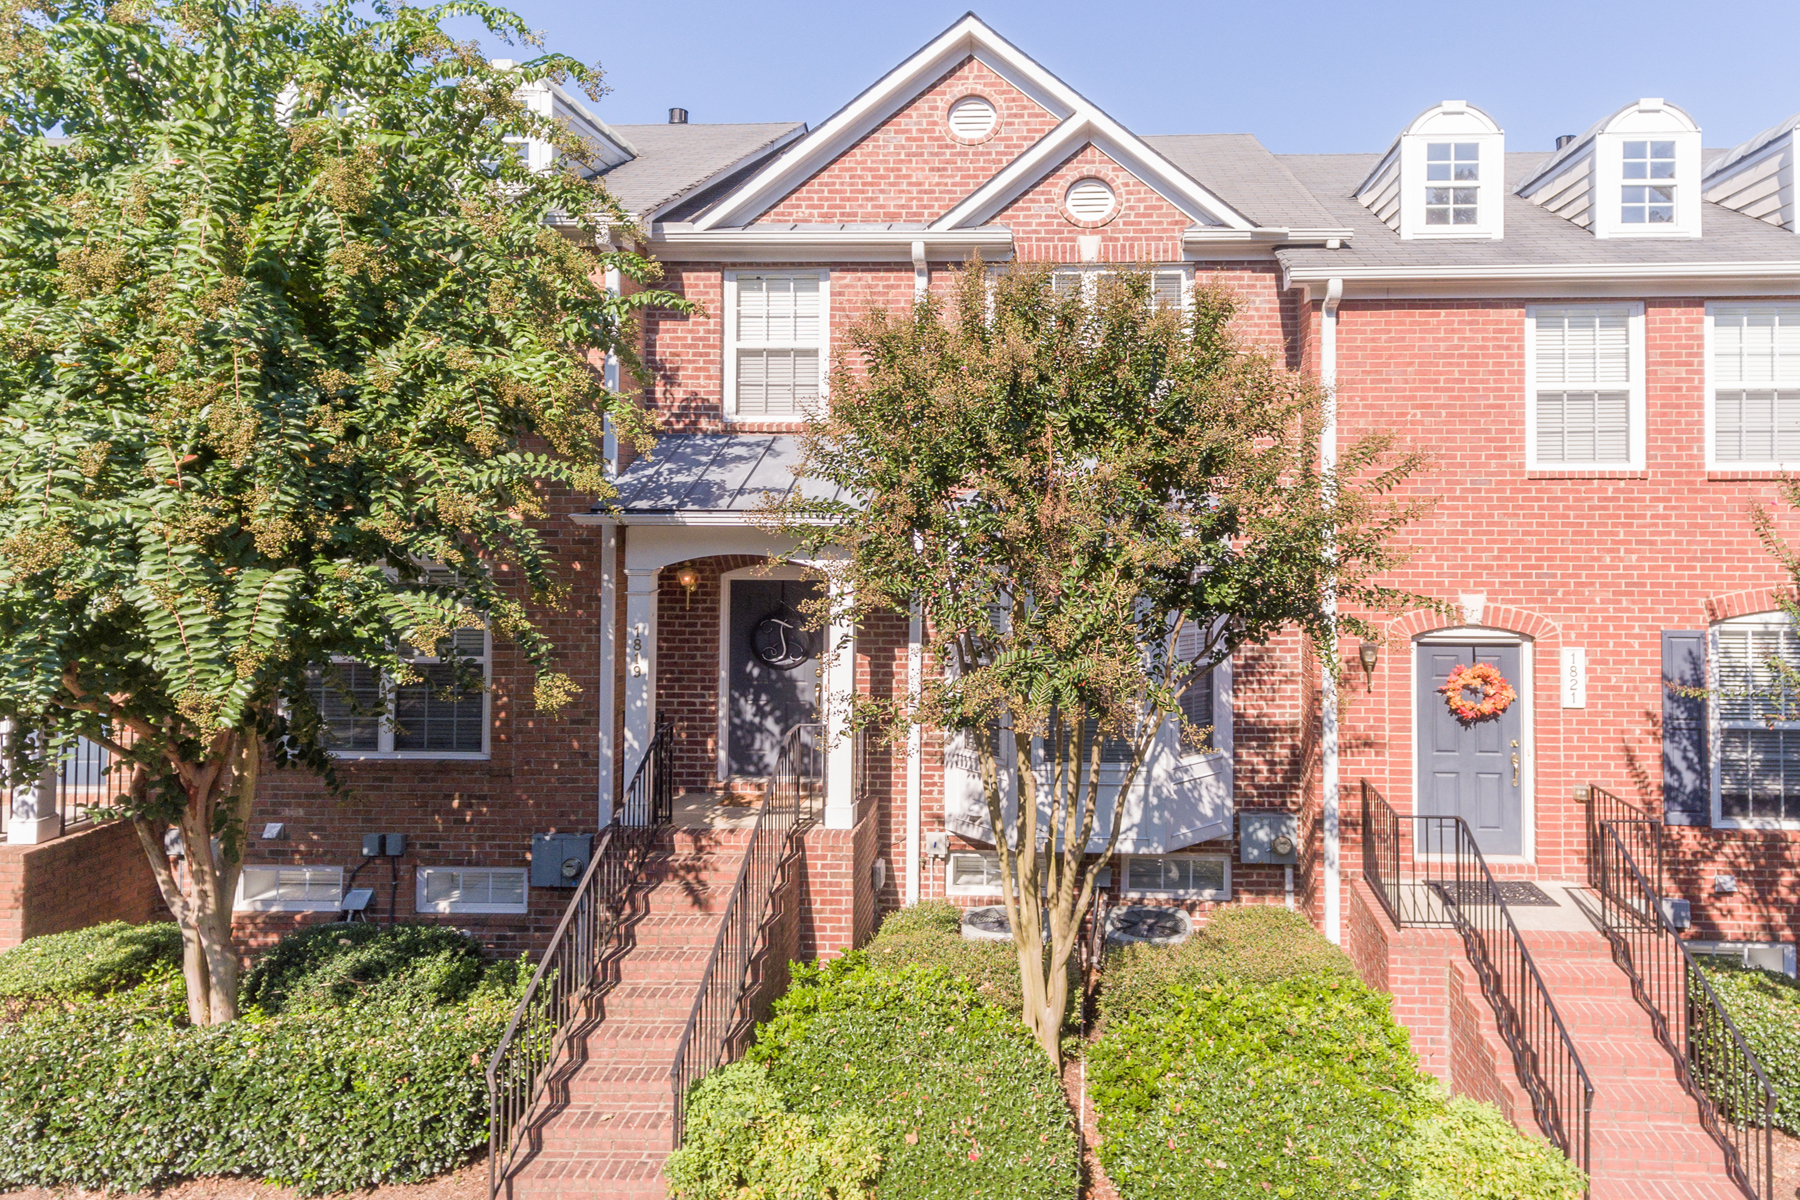 Additional photo for property listing at Three Story, Three Bedroom Brick Townhome With Two Car Garage 1819 Dunrobin Drive Smyrna, Γεωργια 30082 Ηνωμενεσ Πολιτειεσ